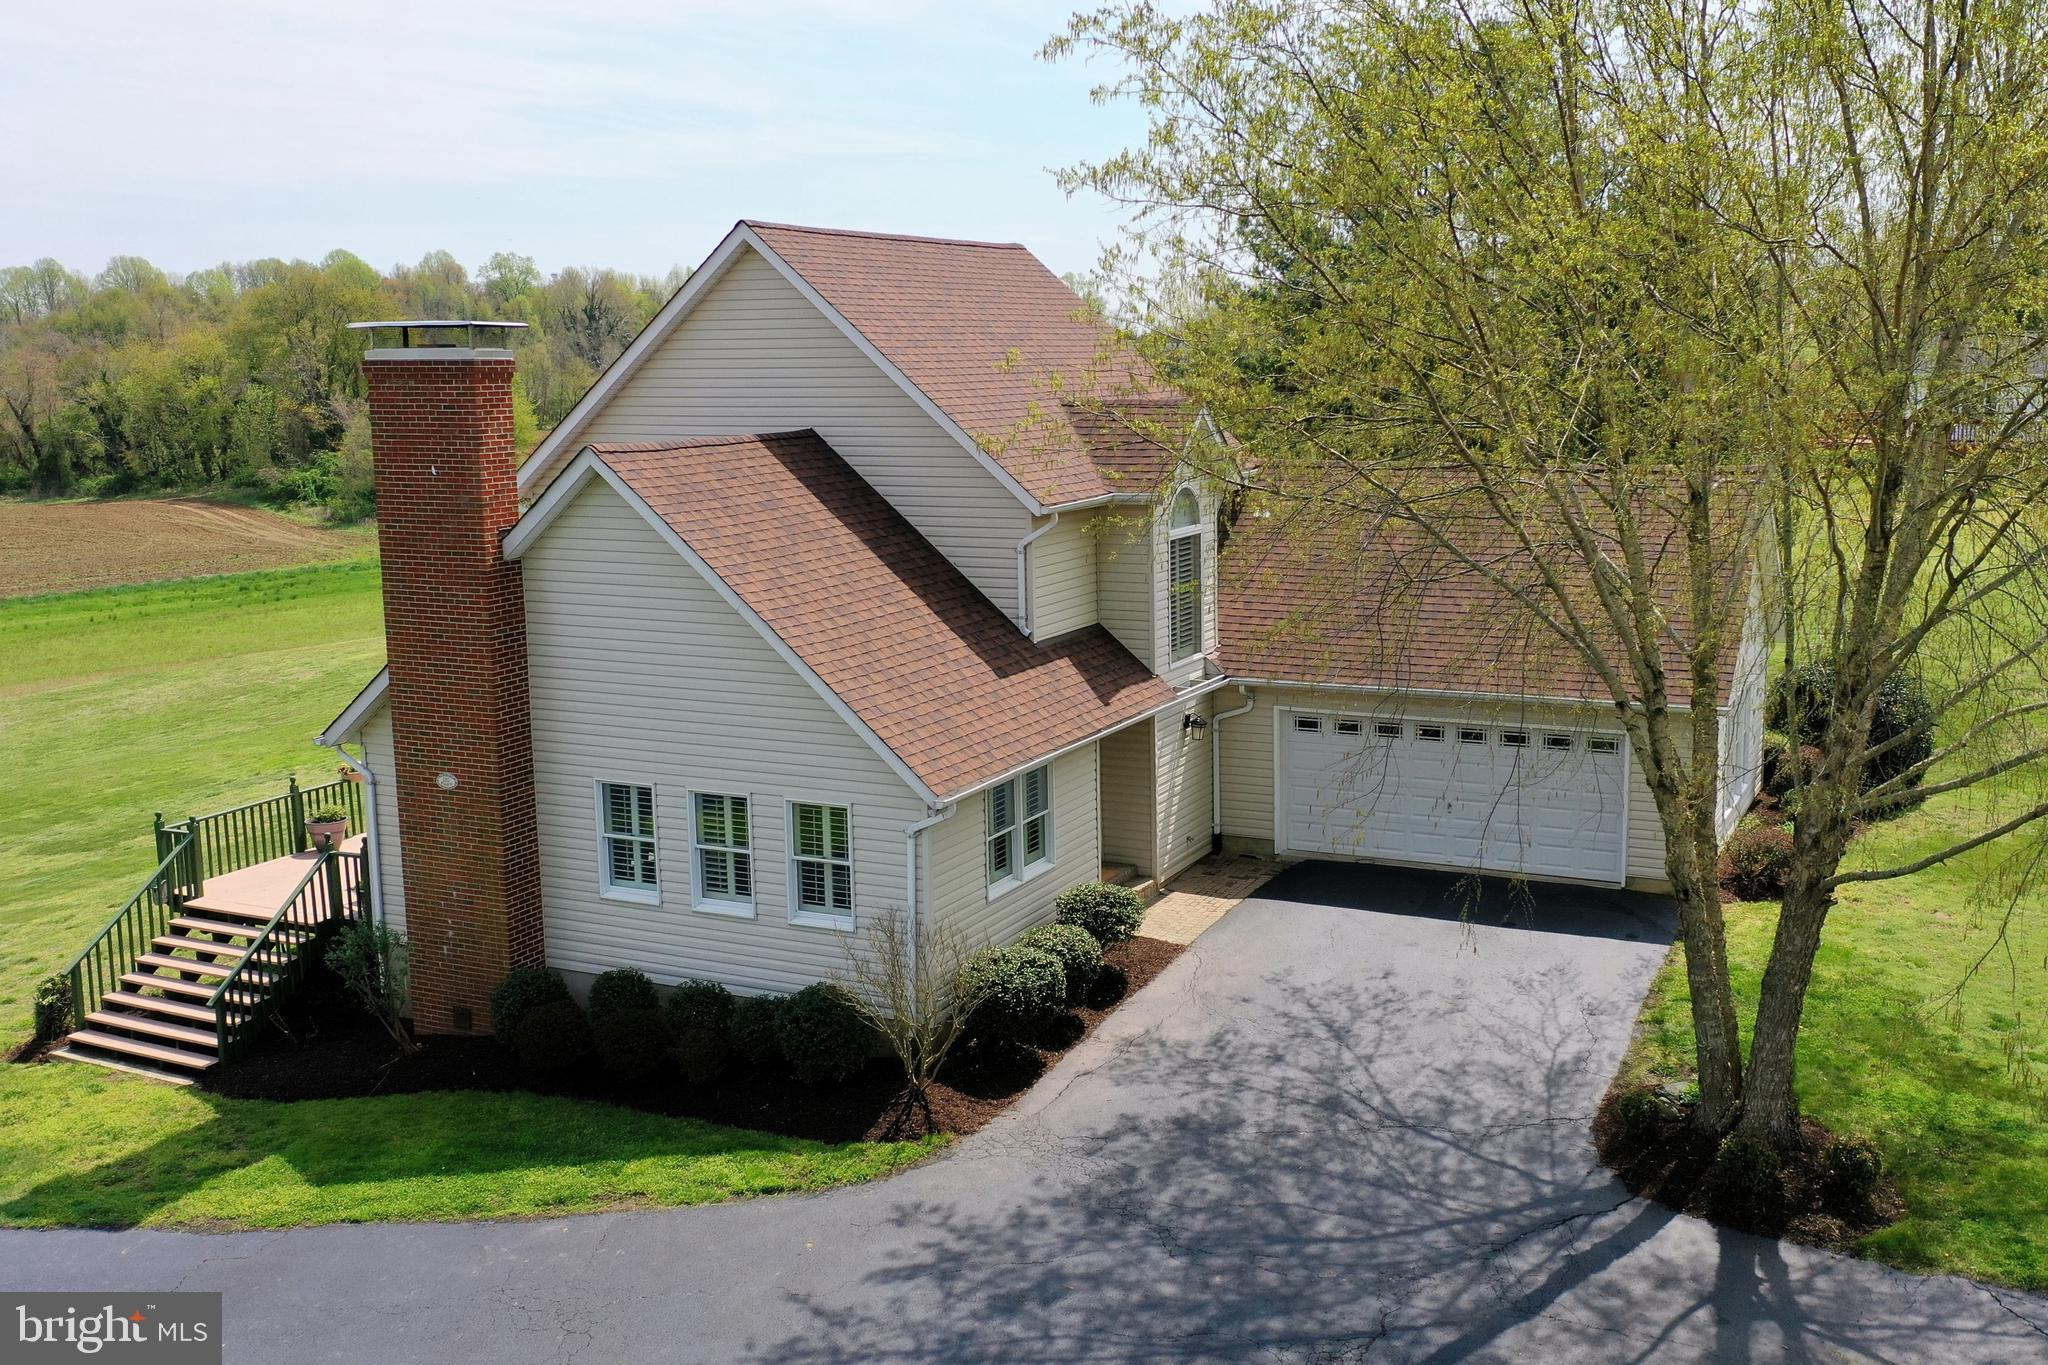 BEAUTIFUL PRISTINE CHESAPEAKE BAY WATERVIEW Contemporary 45' x 47' home. Nice view from every window